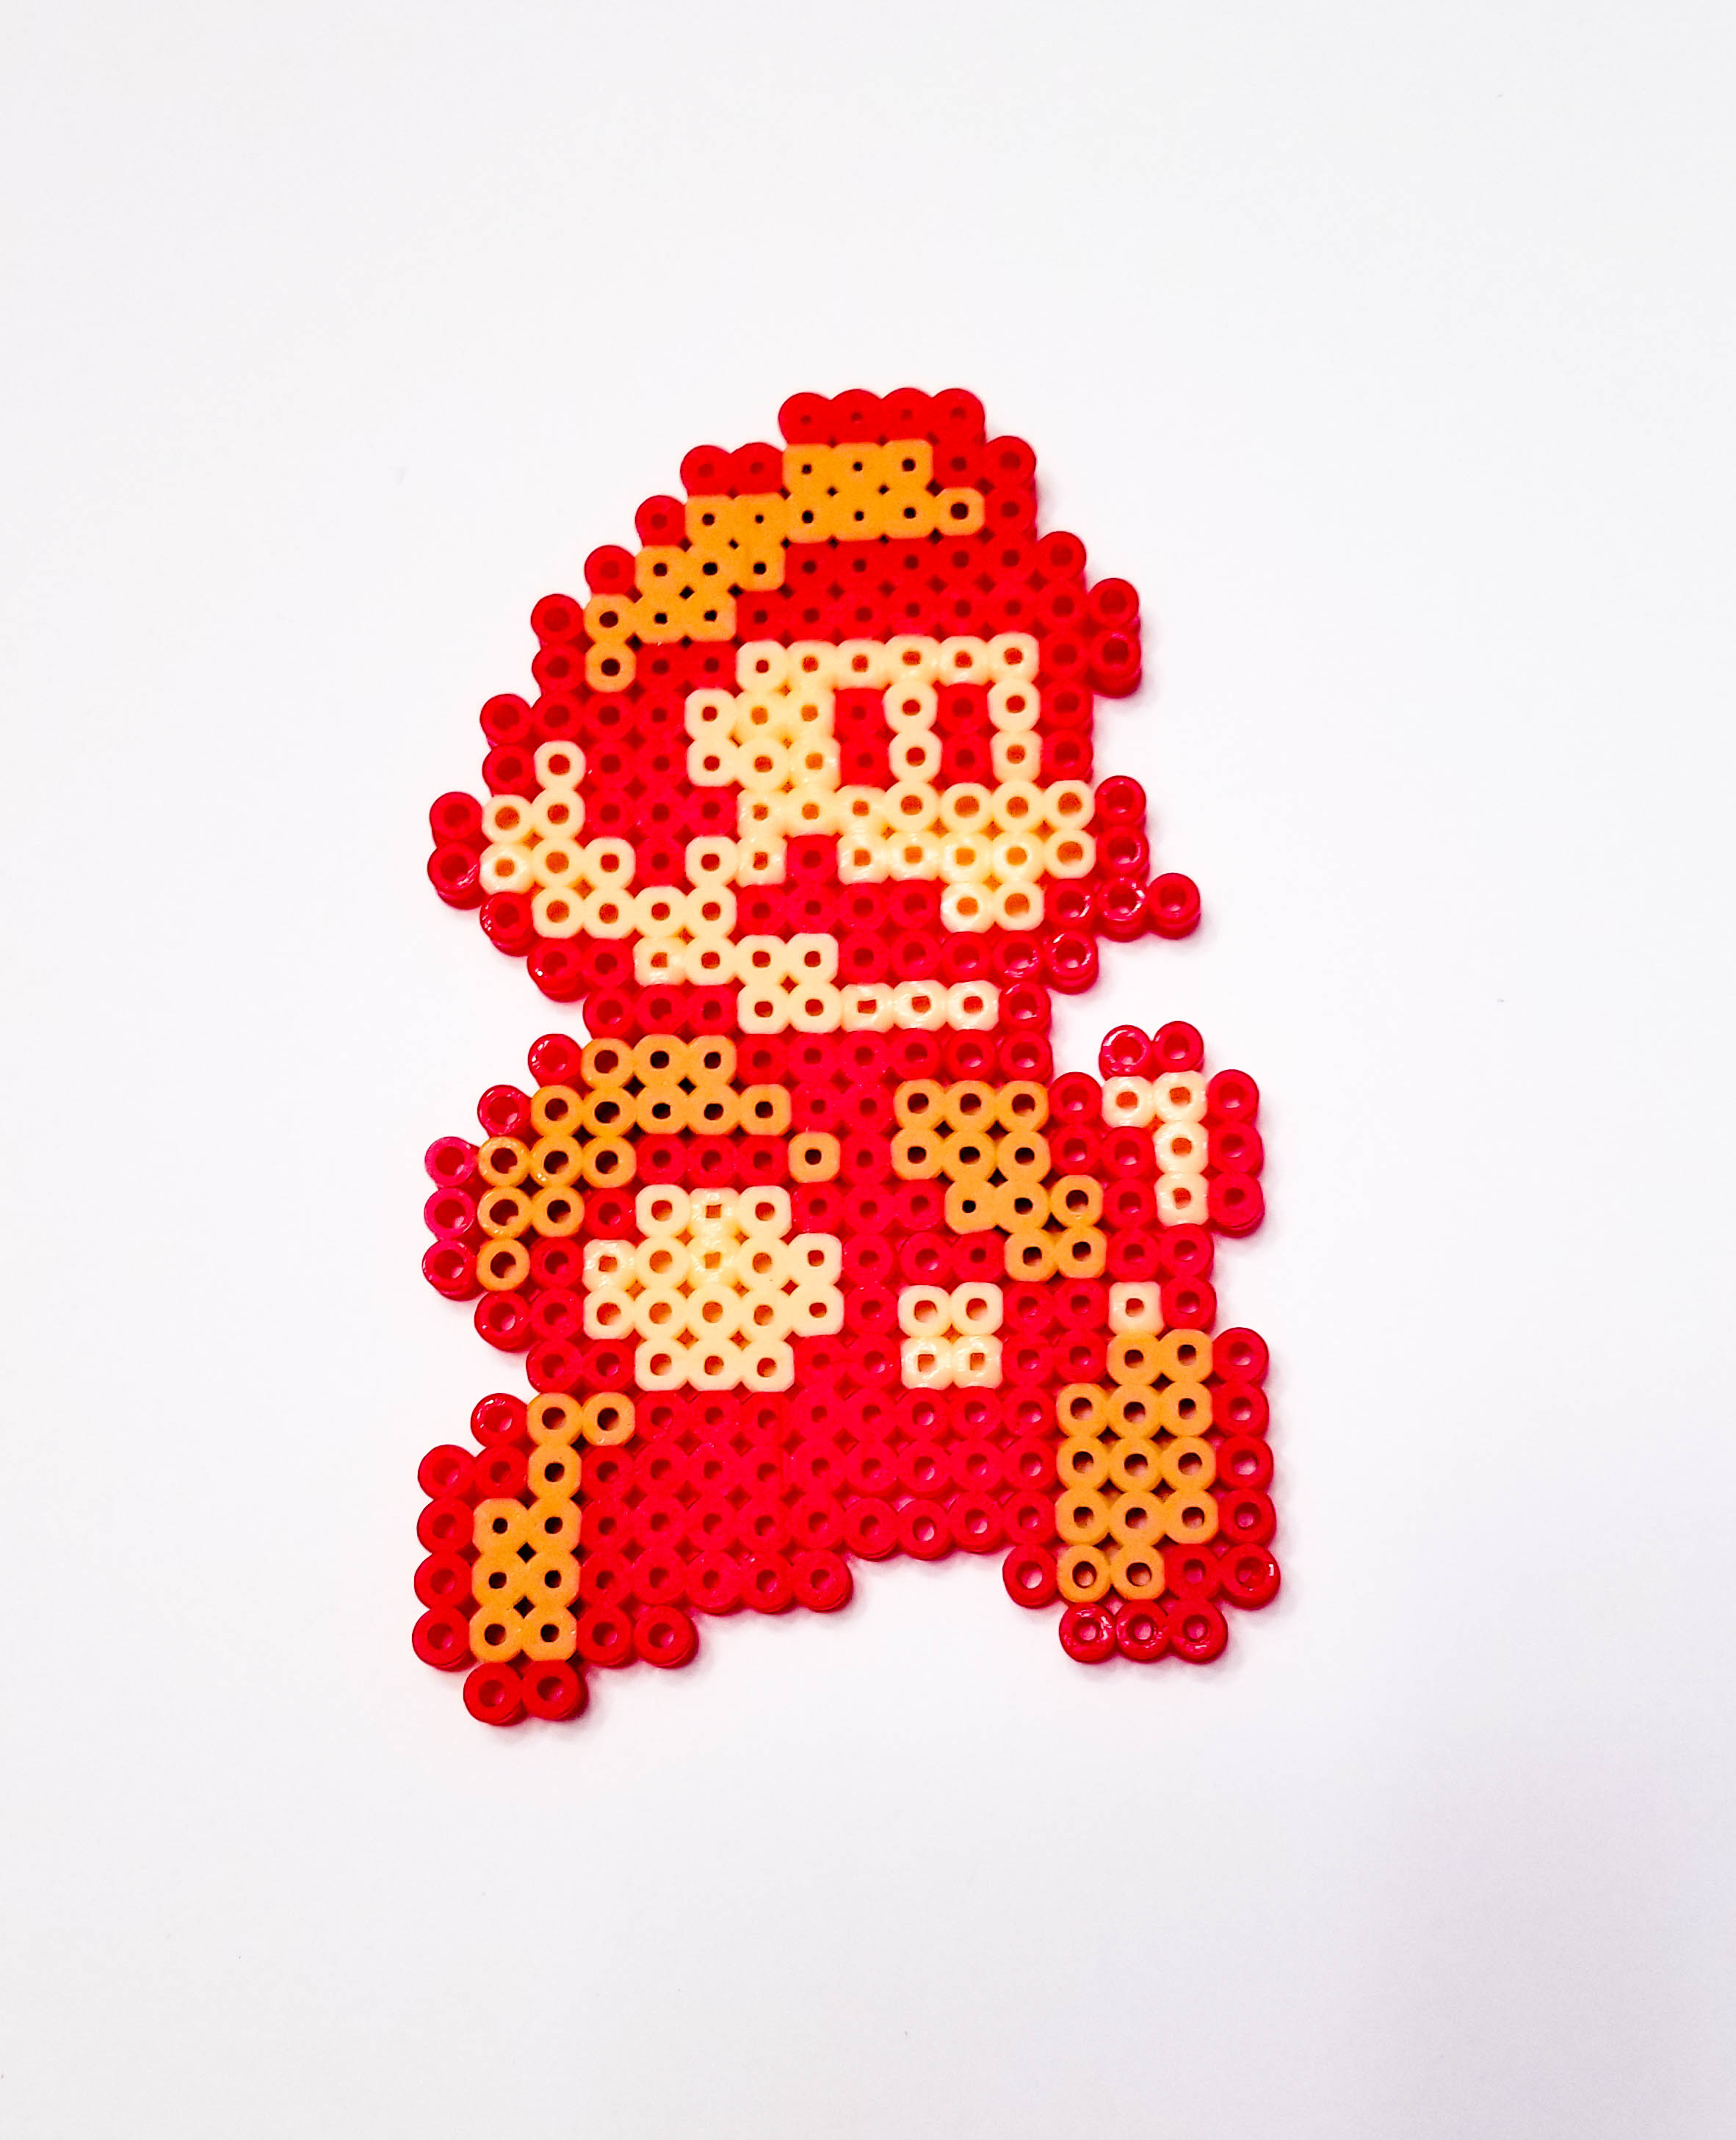 Red Jumping Mario V2 Bead Sprite Pixel Art Piece A Little